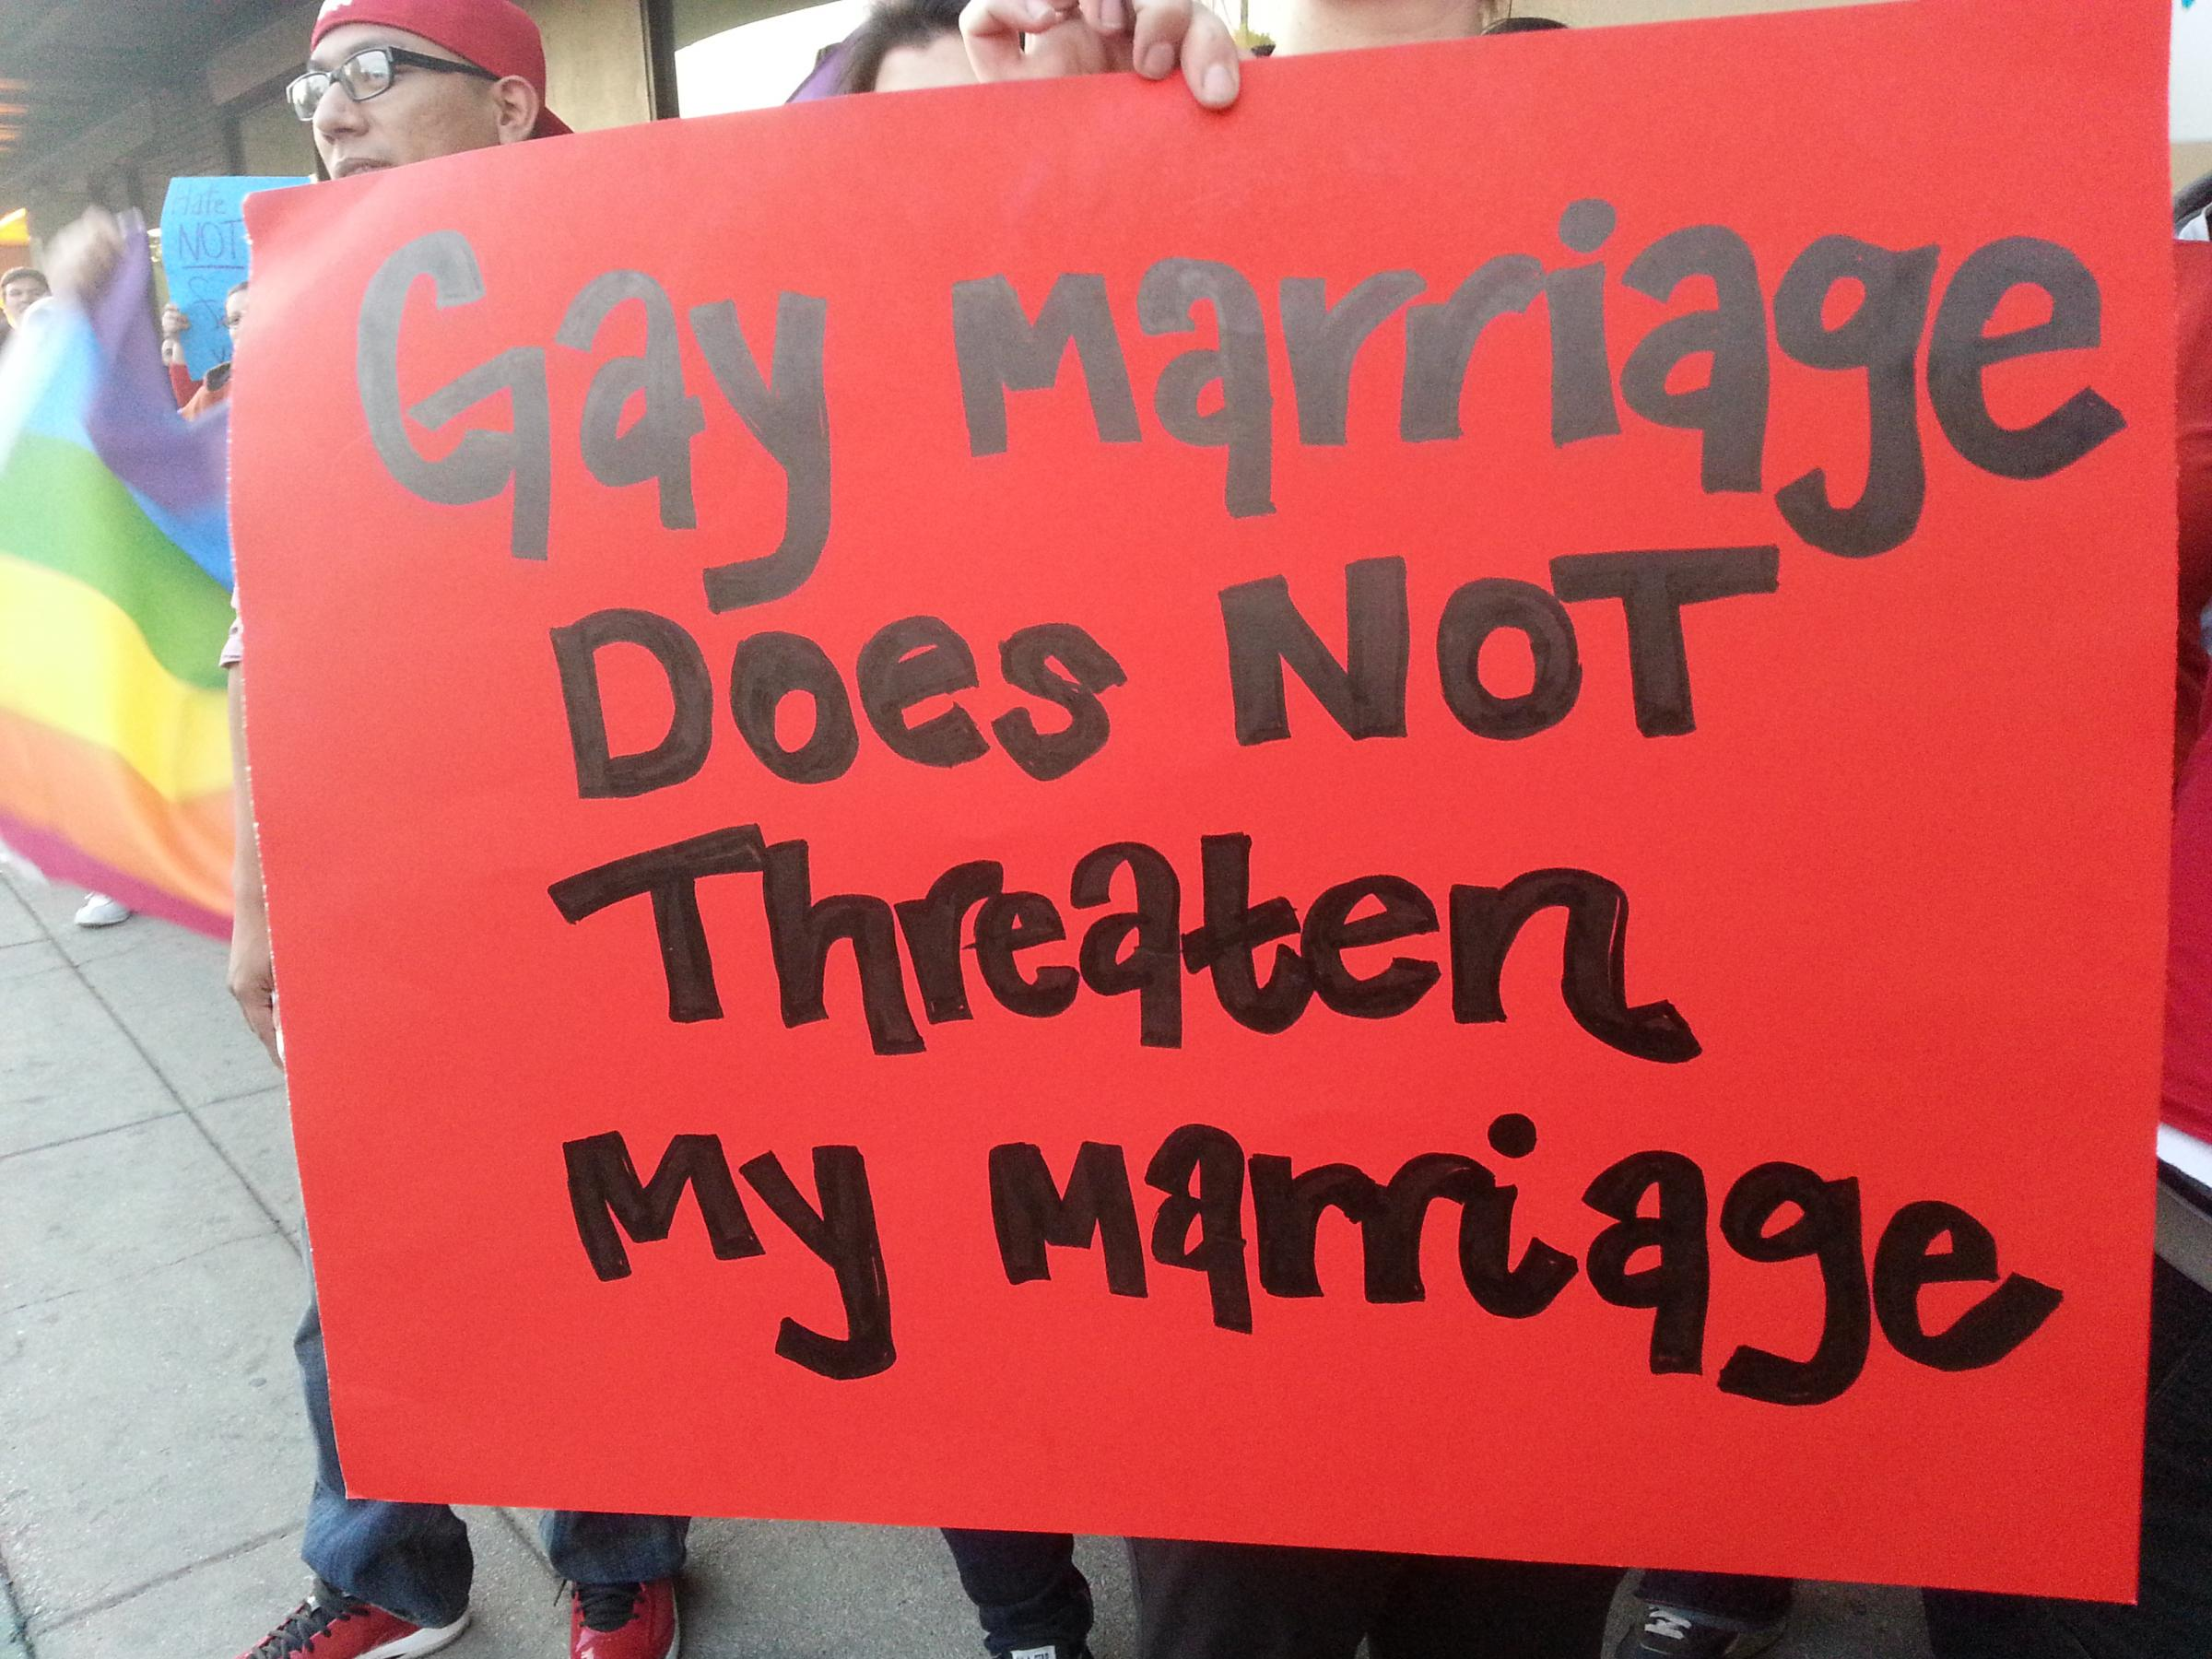 from Colten supporters for gay marriage